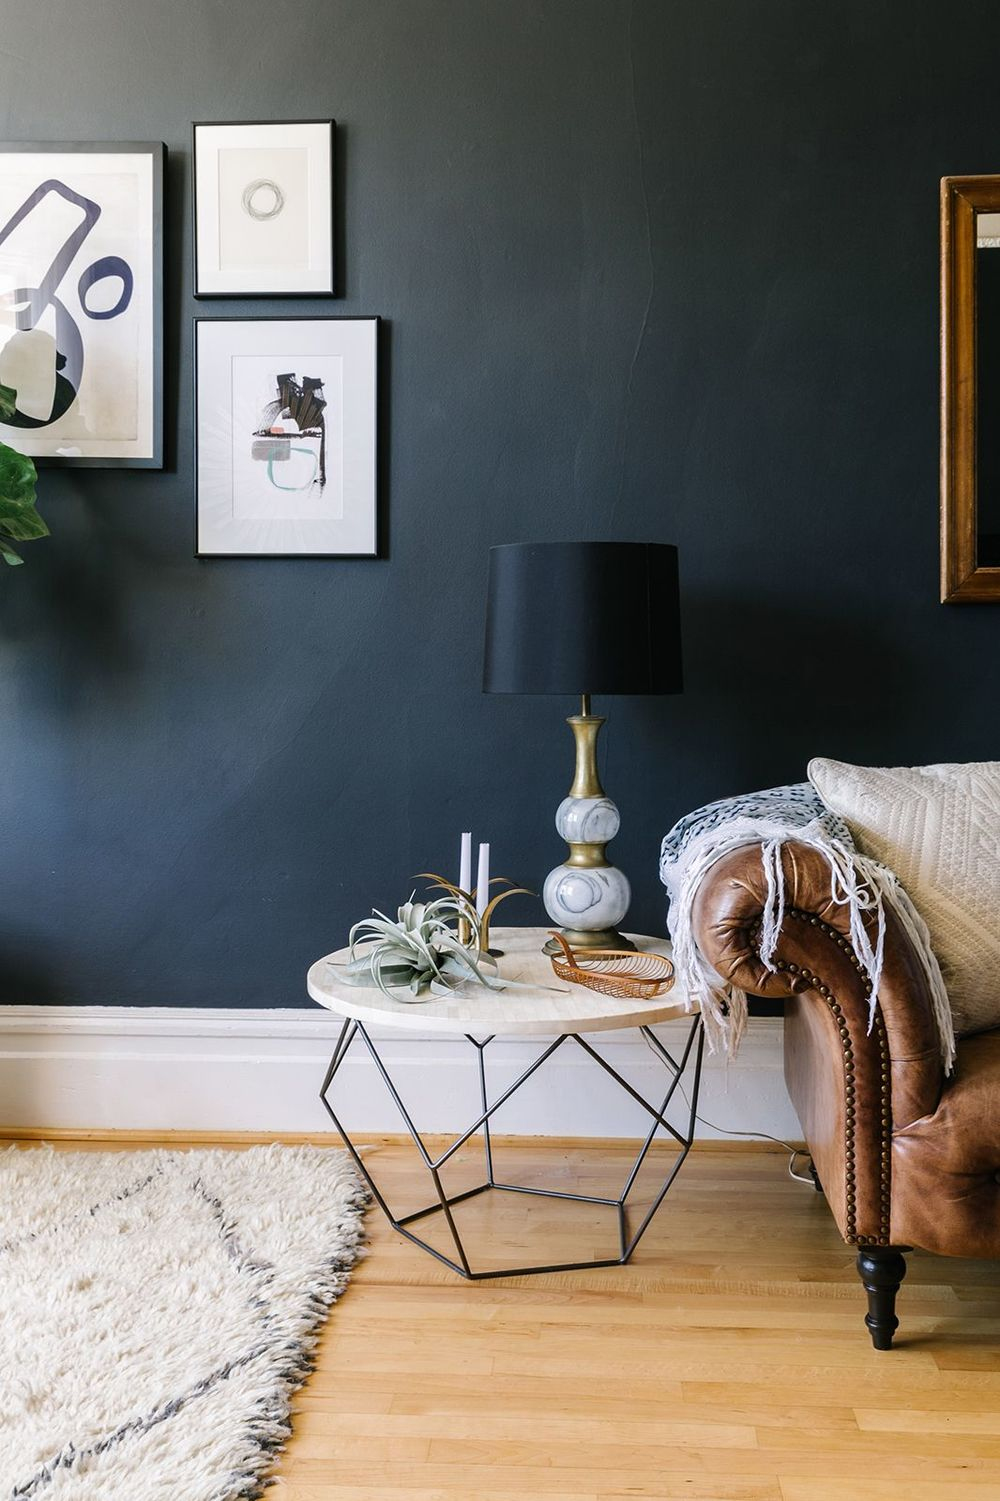 Charcoal Living Room Walls.  Click for more dark wall inspiration. | www.jaymeesrp.com